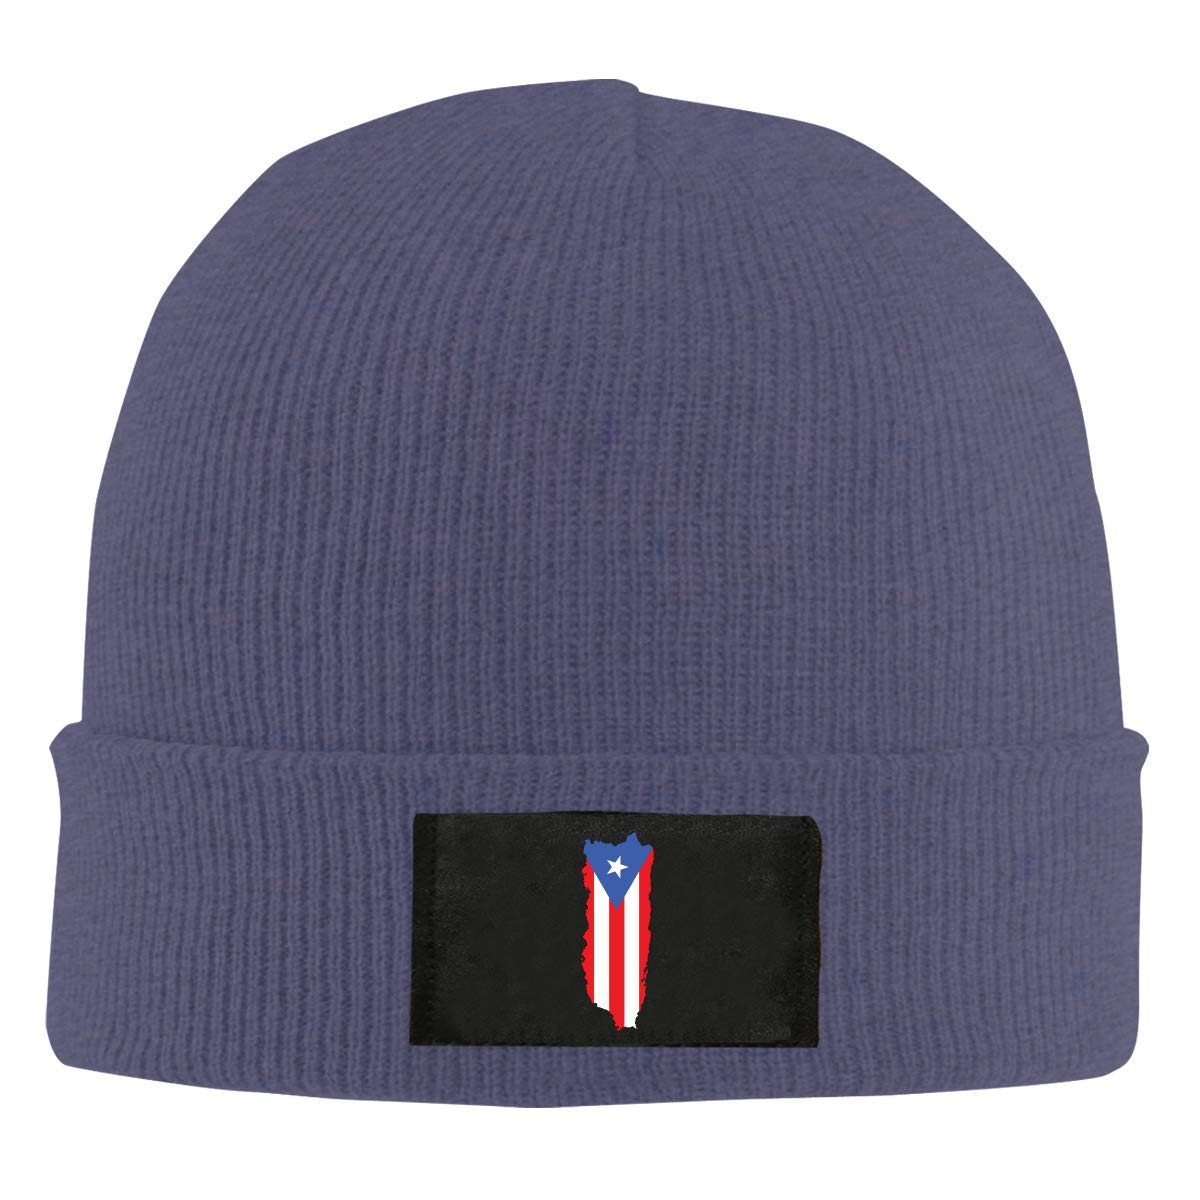 100/% Acrylic Fashion Skiing Cap Mens and Womens Puerto Rico Flag Knitted Cap